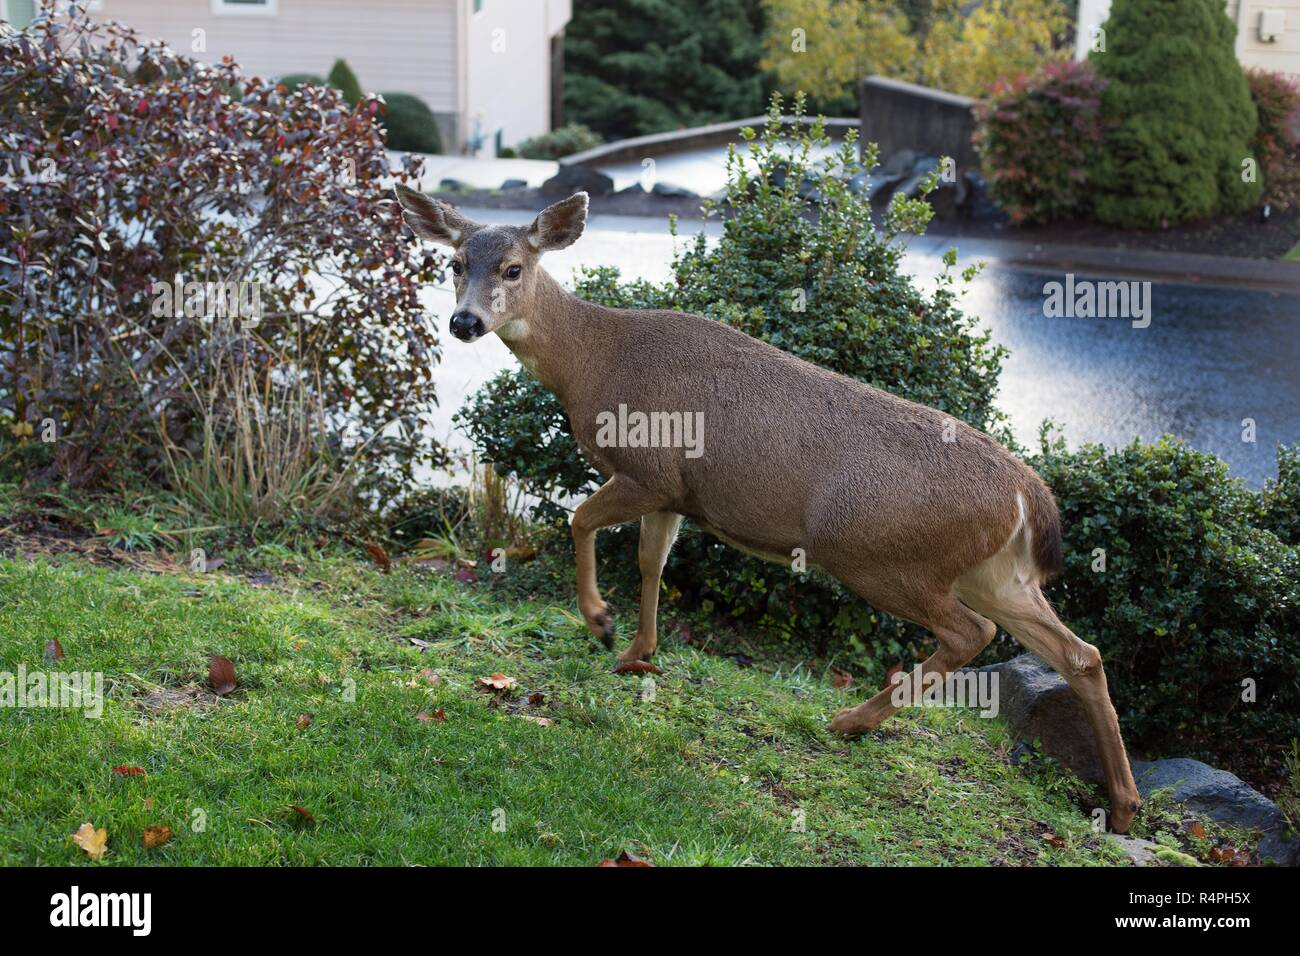 A black tail deer on a lawn in Eugene, Oregon, USA. - Stock Image